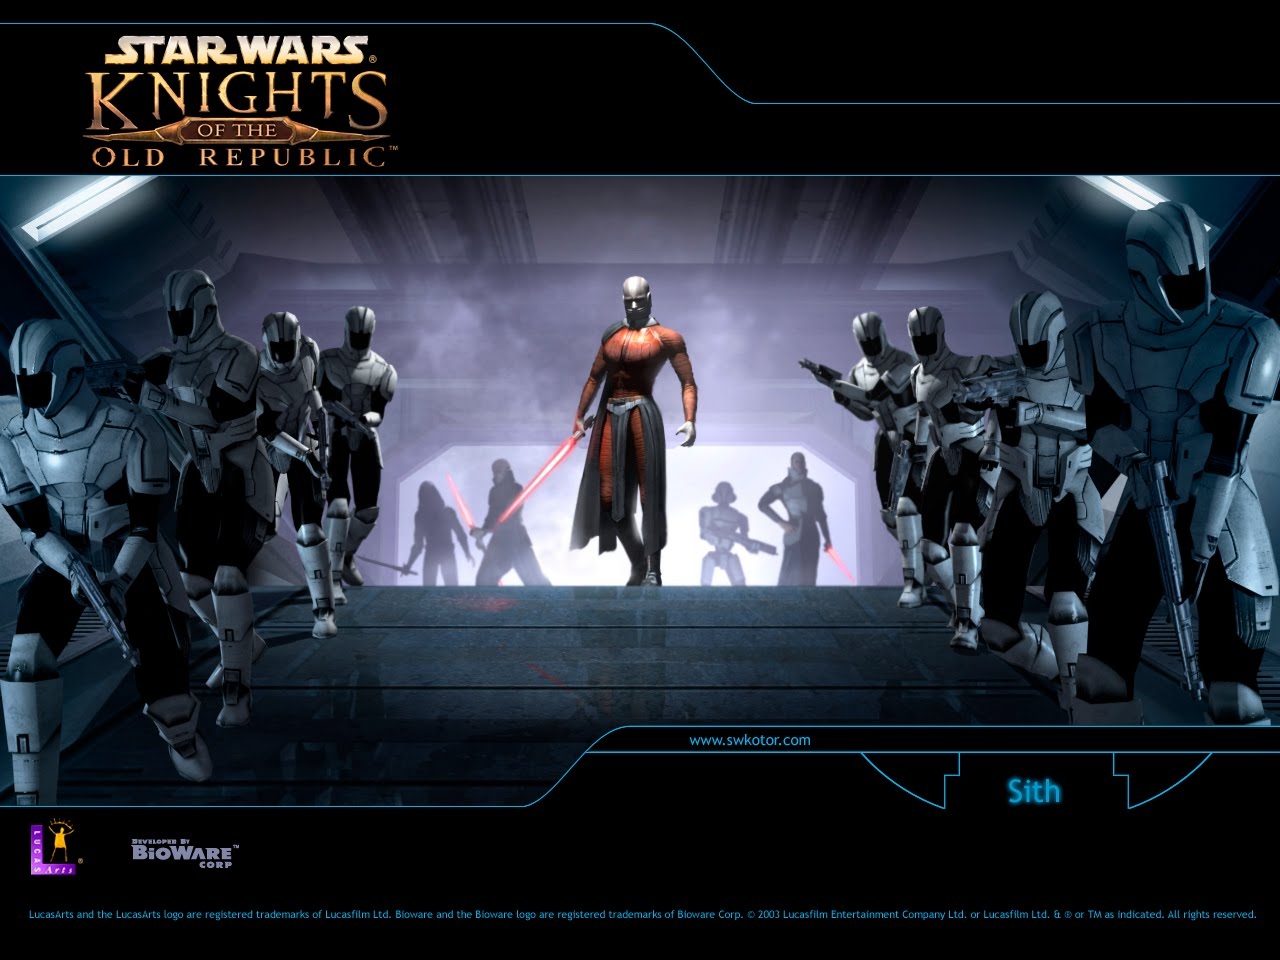 Super Punch Star Wars The Old Republic wallpapers 1280x960